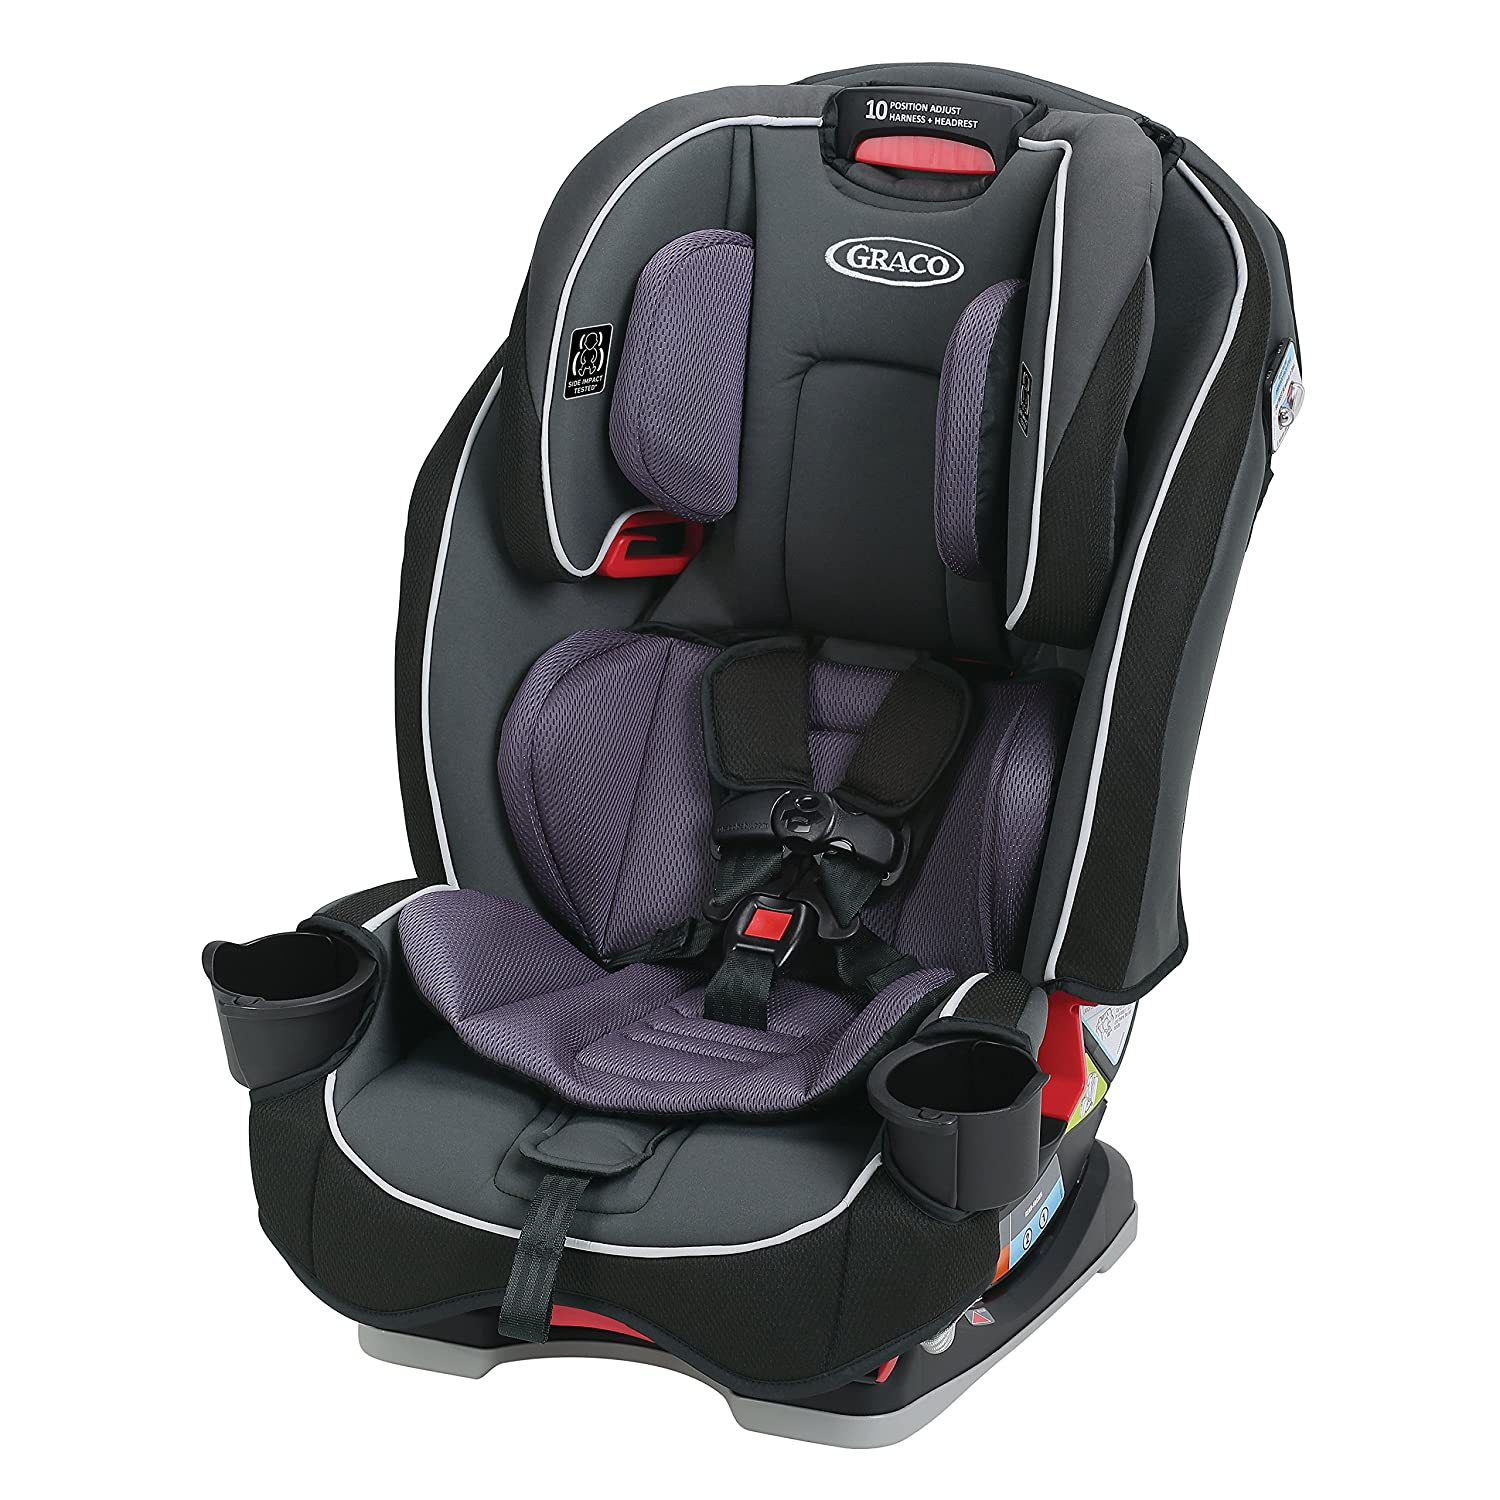 Amazon Com Graco Slimfit 3 In 1 Convertible Car Seat Infant To